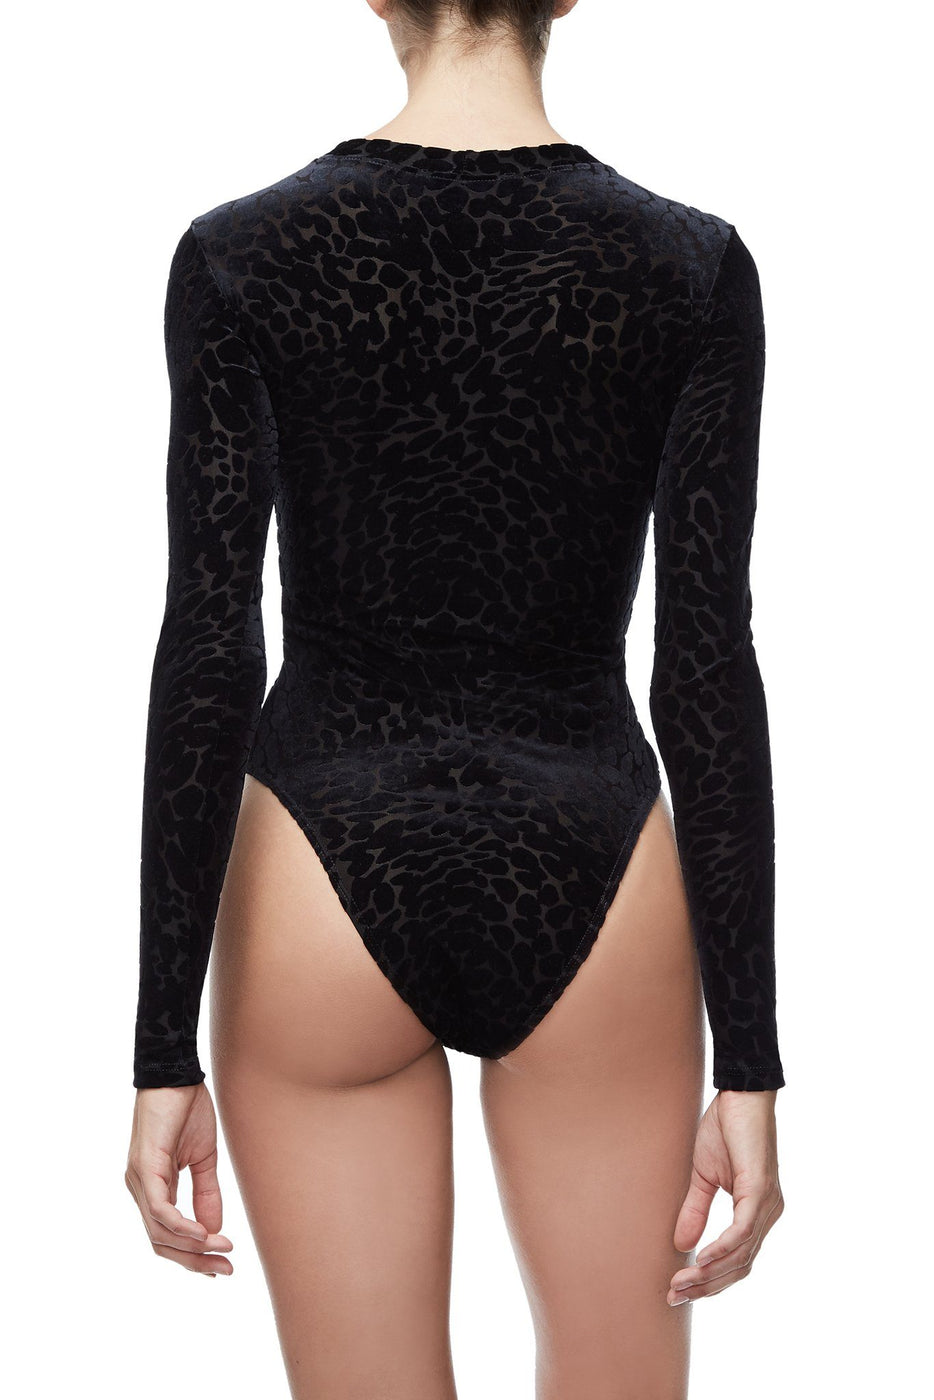 4c93c65111 The Wilder One Bodysuit - Black001